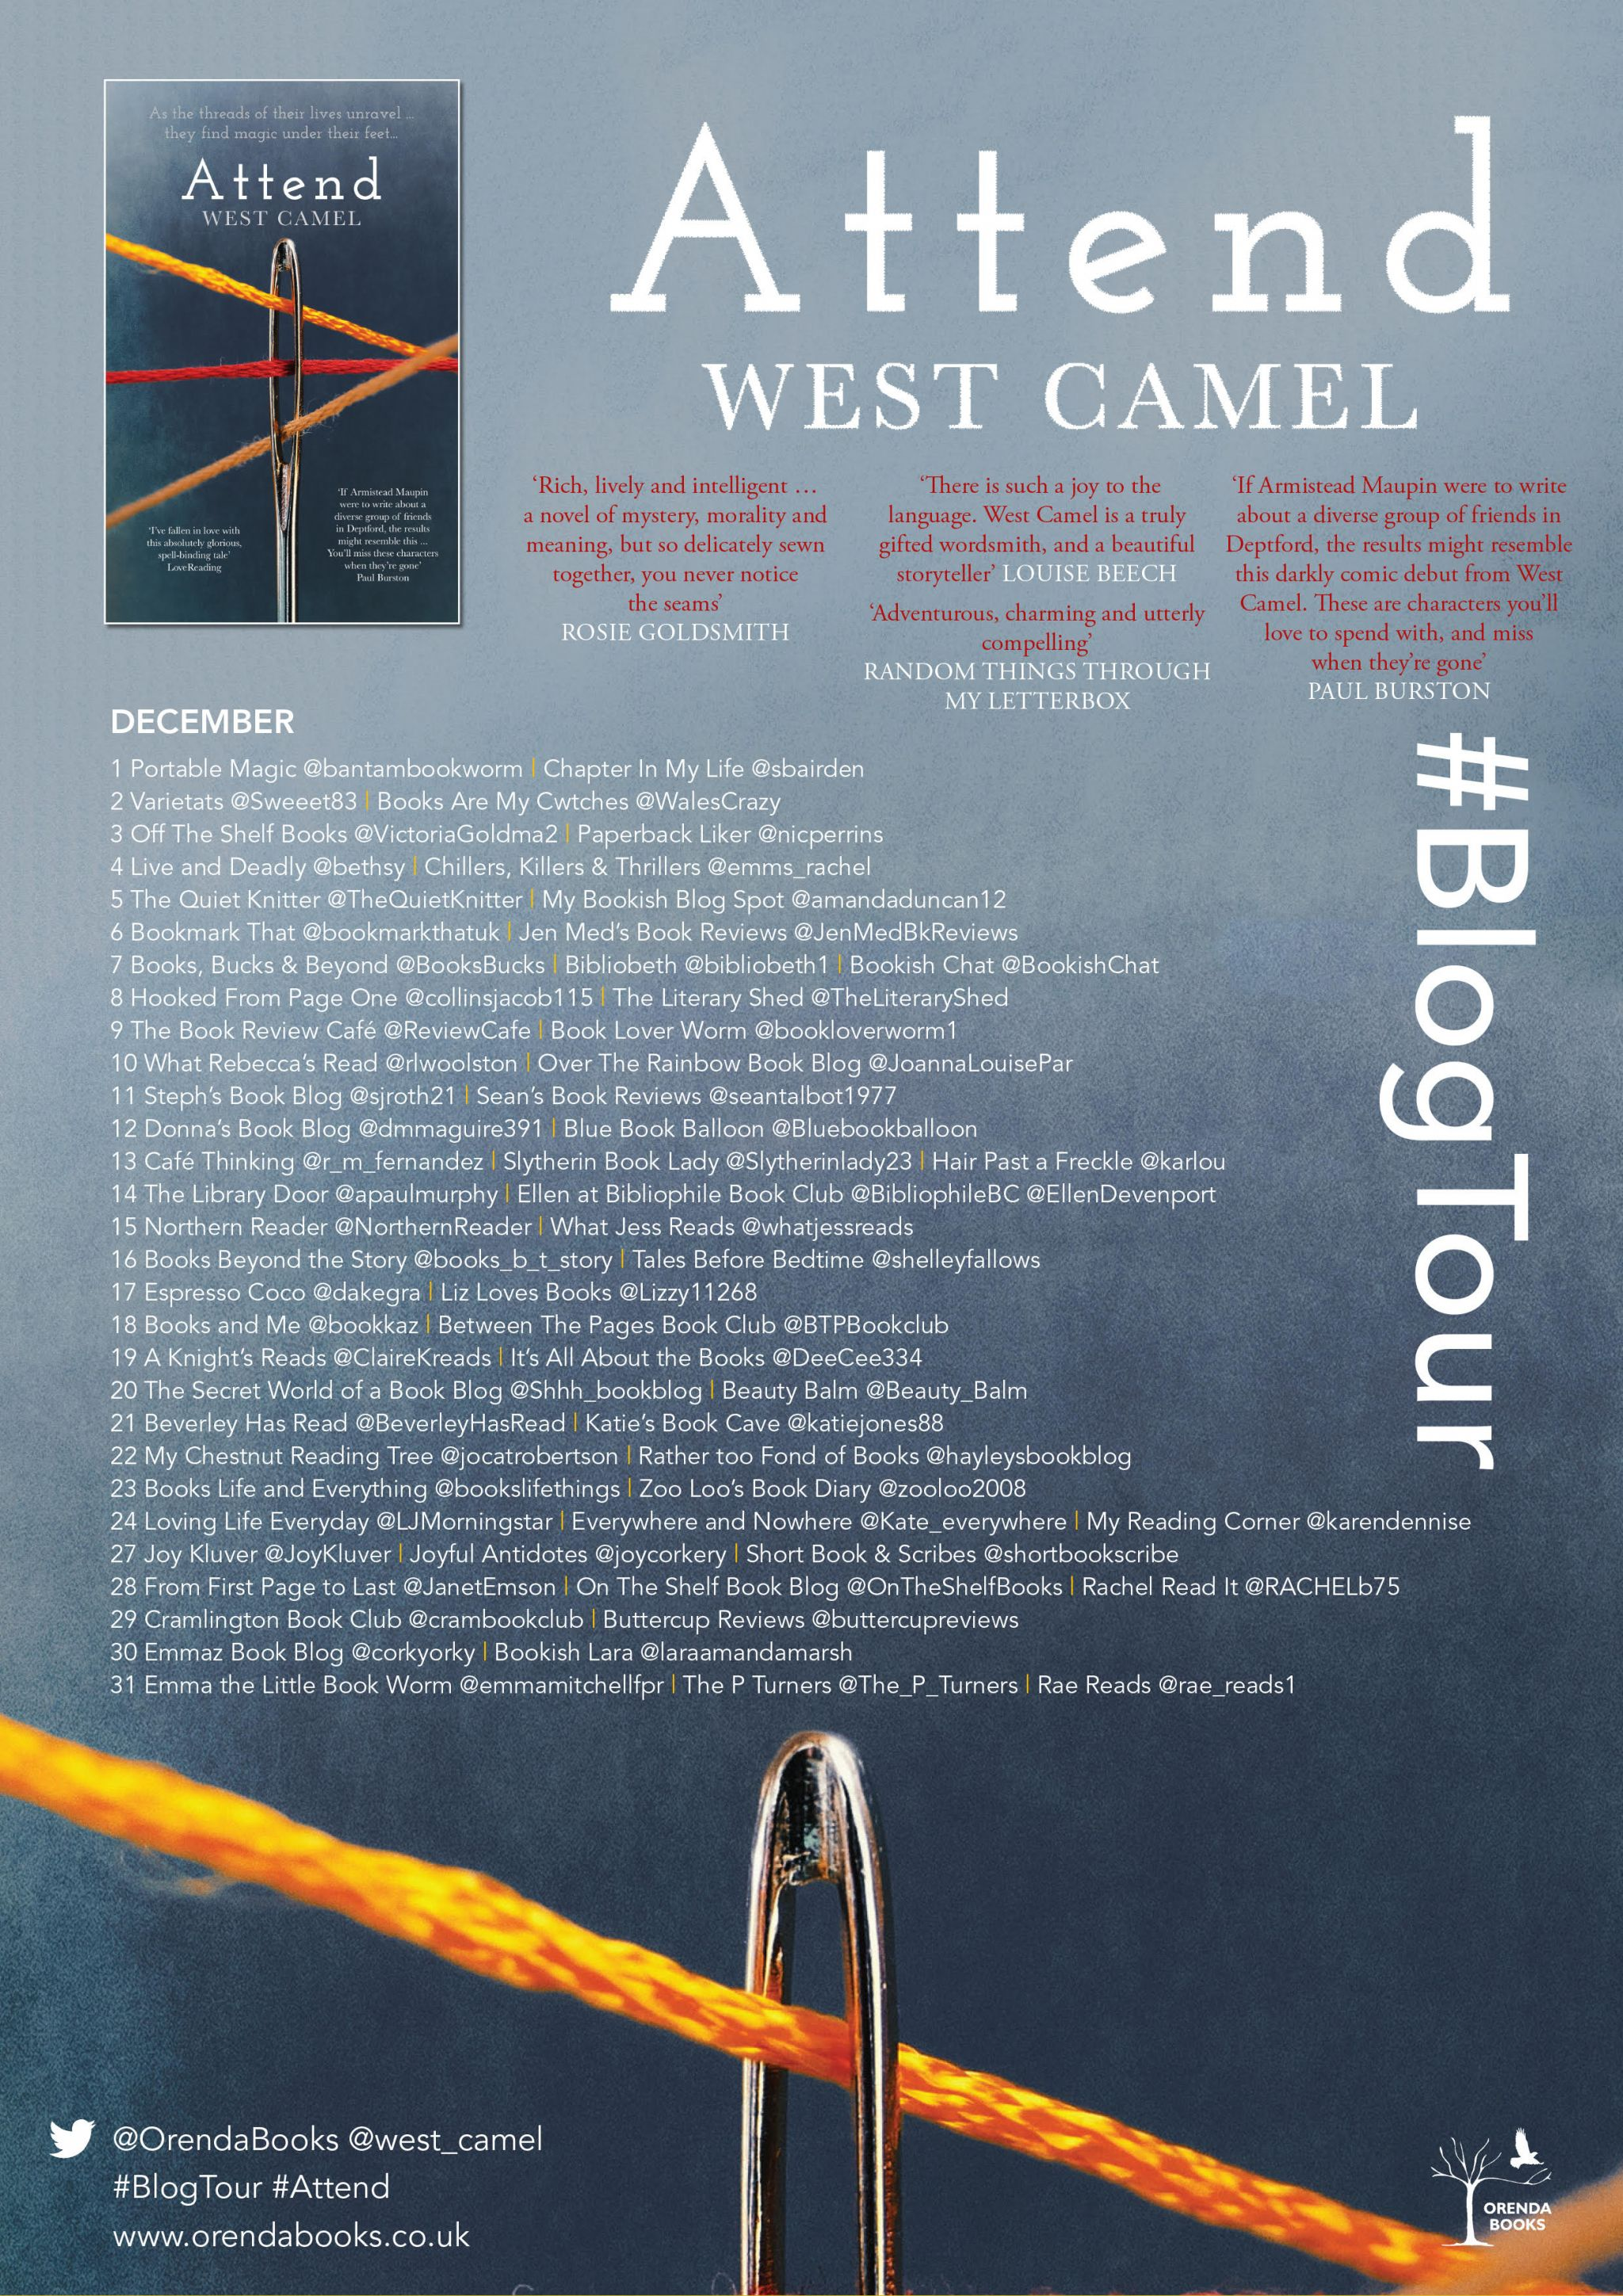 BookReview of Attend by West Camel @west_camel @annecater @orendabooks #teamorenda #blogtour #attend